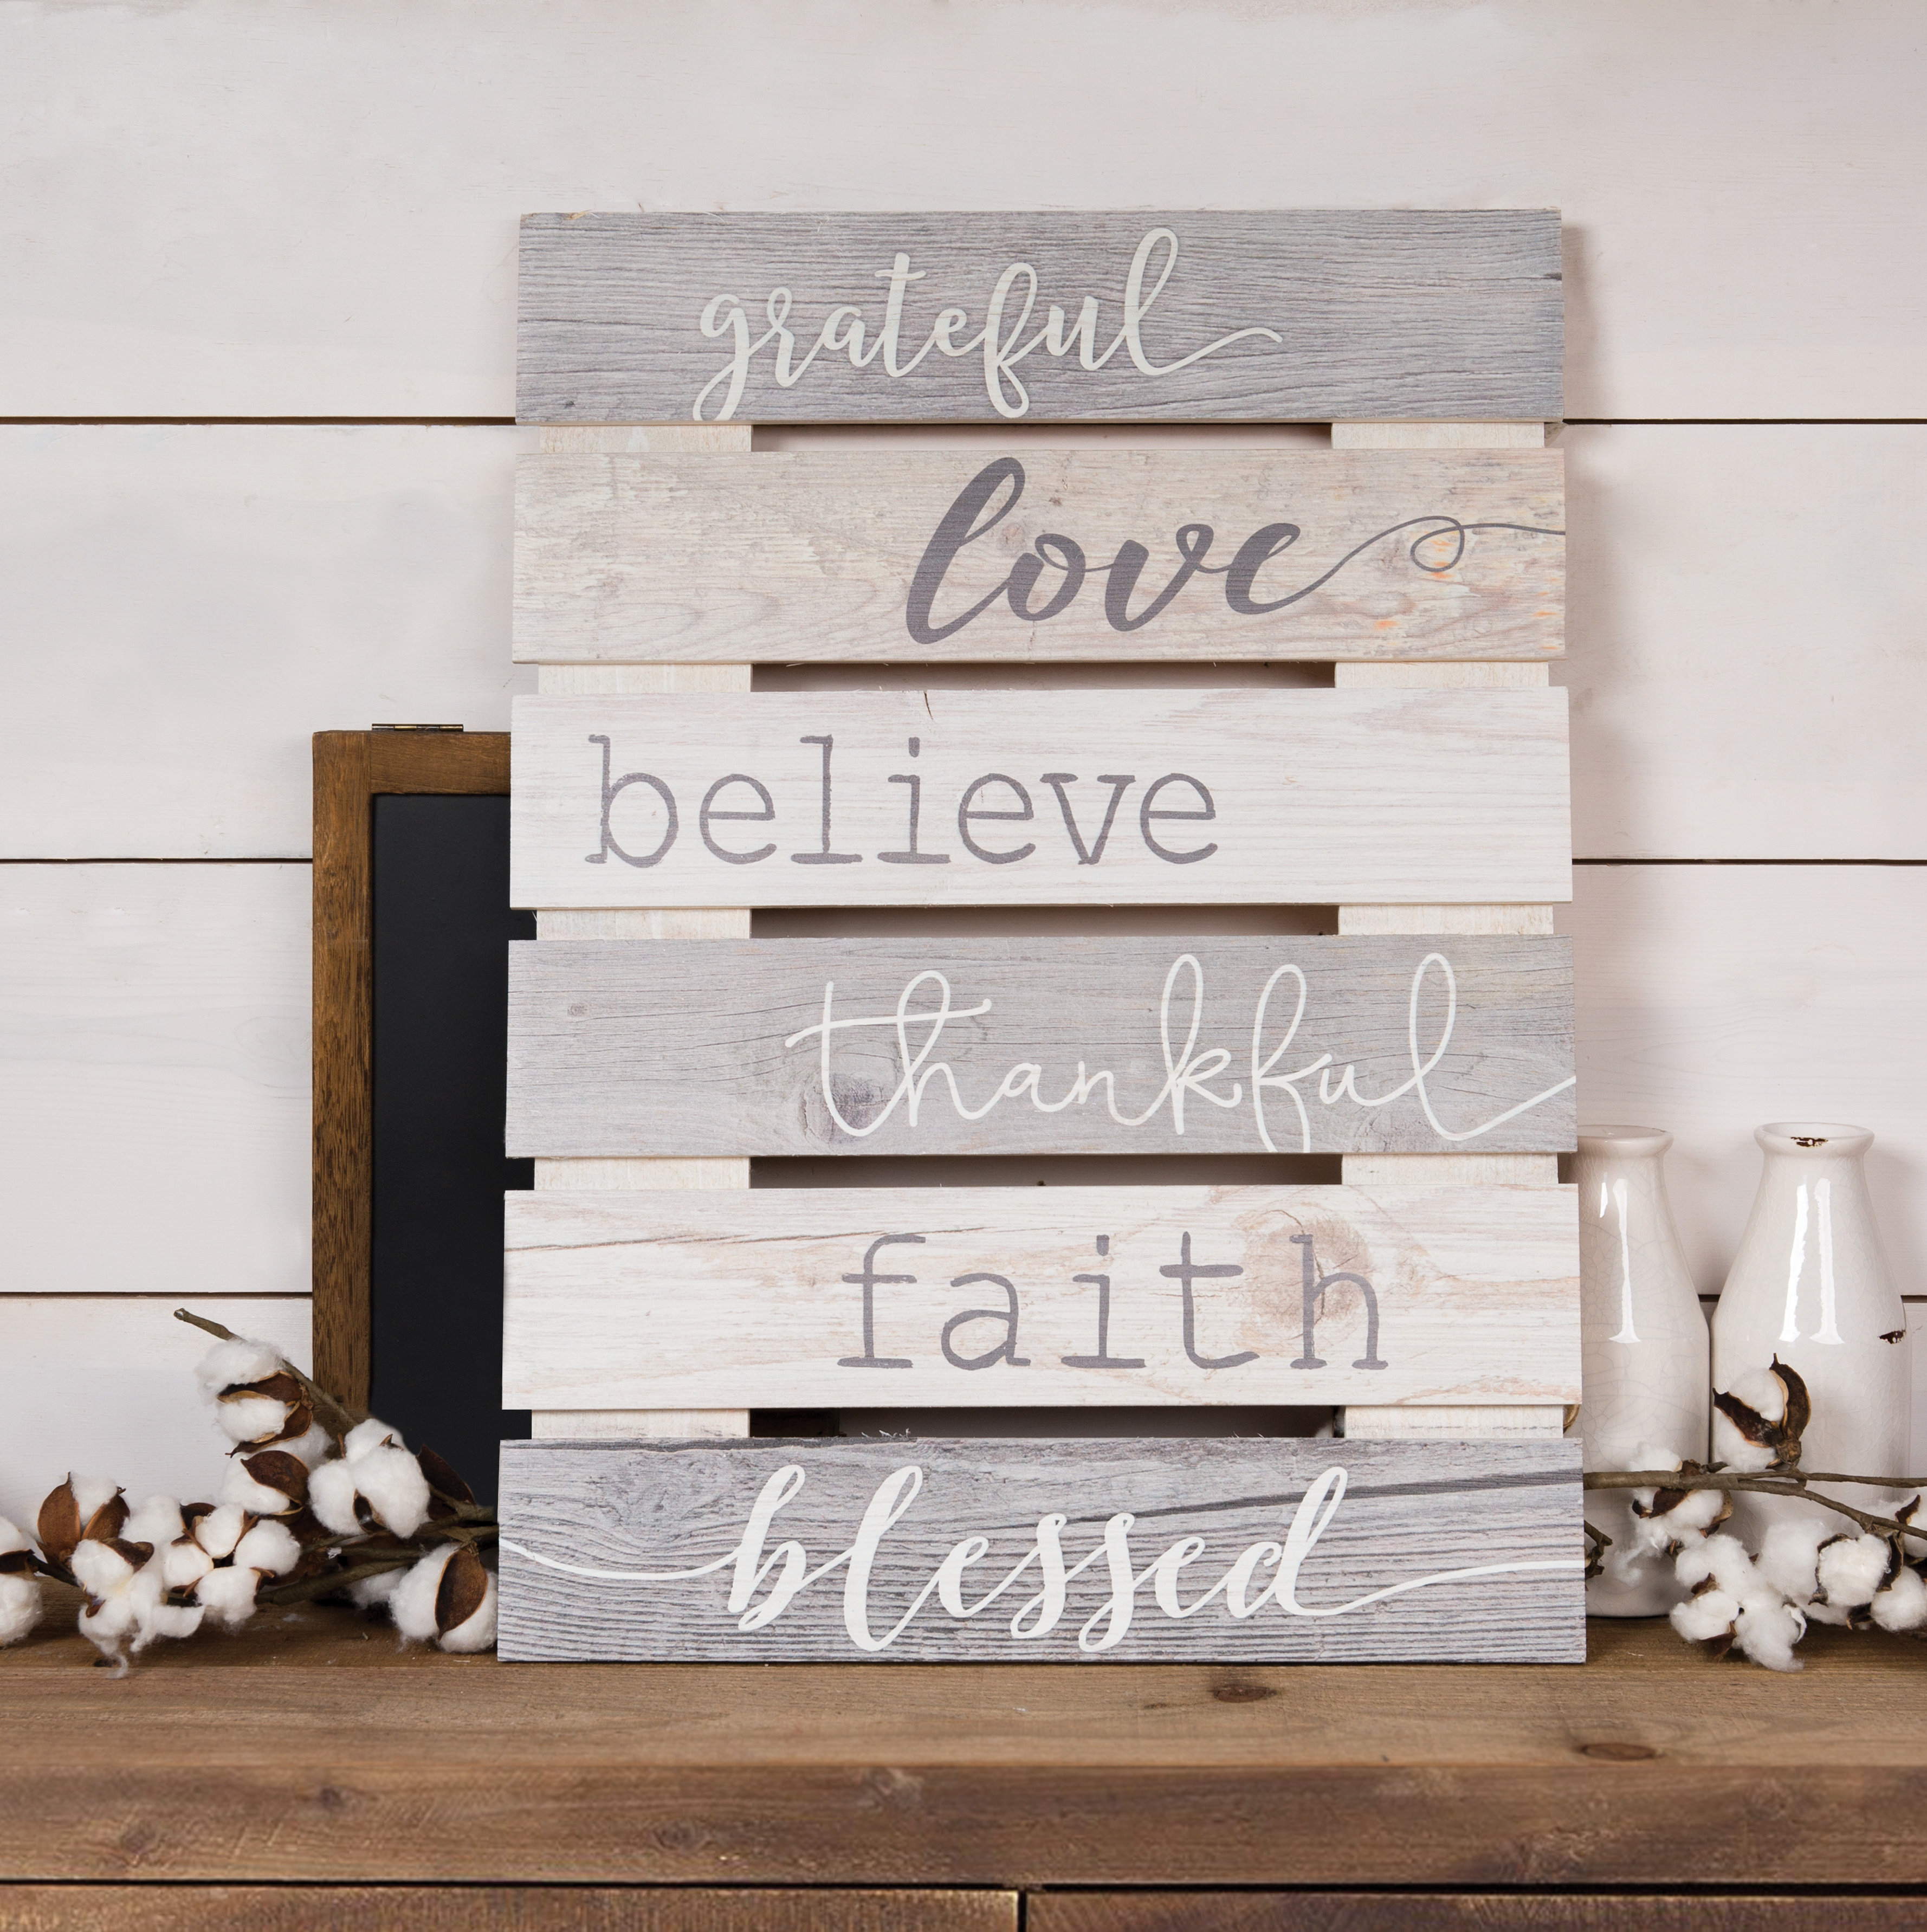 Skid Sign Grateful, Love, Believe, Thankful, Faith, Blessed Wall Décor Inside 3 Piece Wash, Brush, Comb Wall Decor Sets (set Of 3) (View 14 of 30)